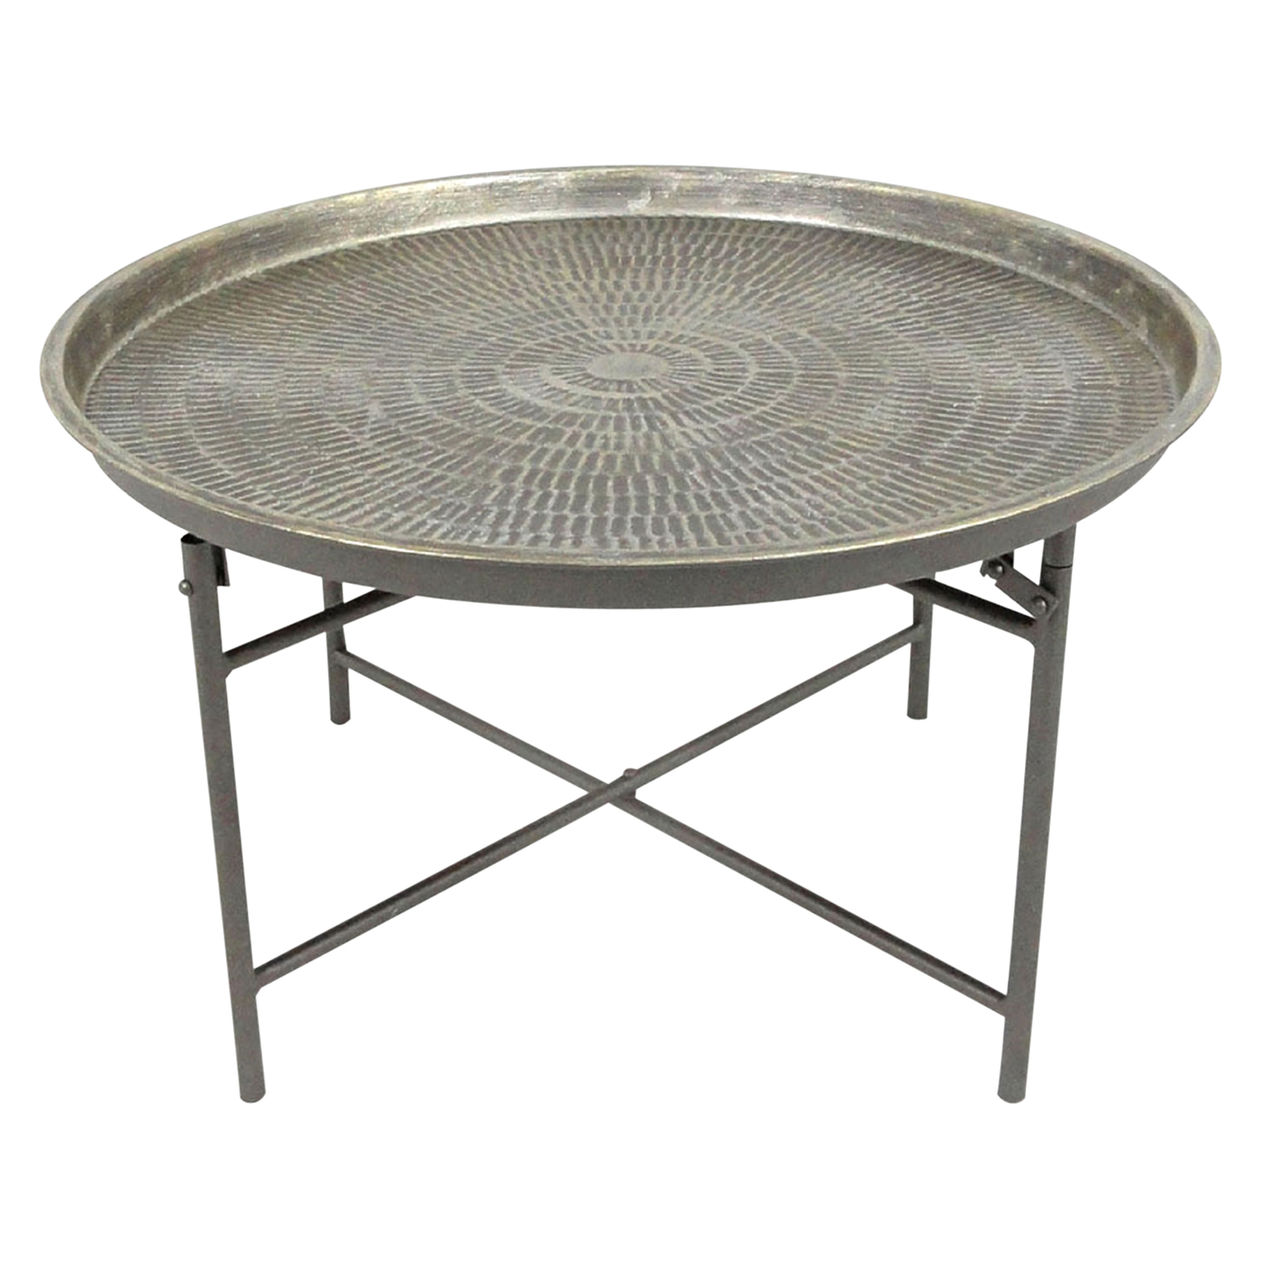 target metal cape tables bedroom barn set end bedside side white town tanner marble furniture small pottery nesting patio round winsome gold table elm west outdoor gray full size